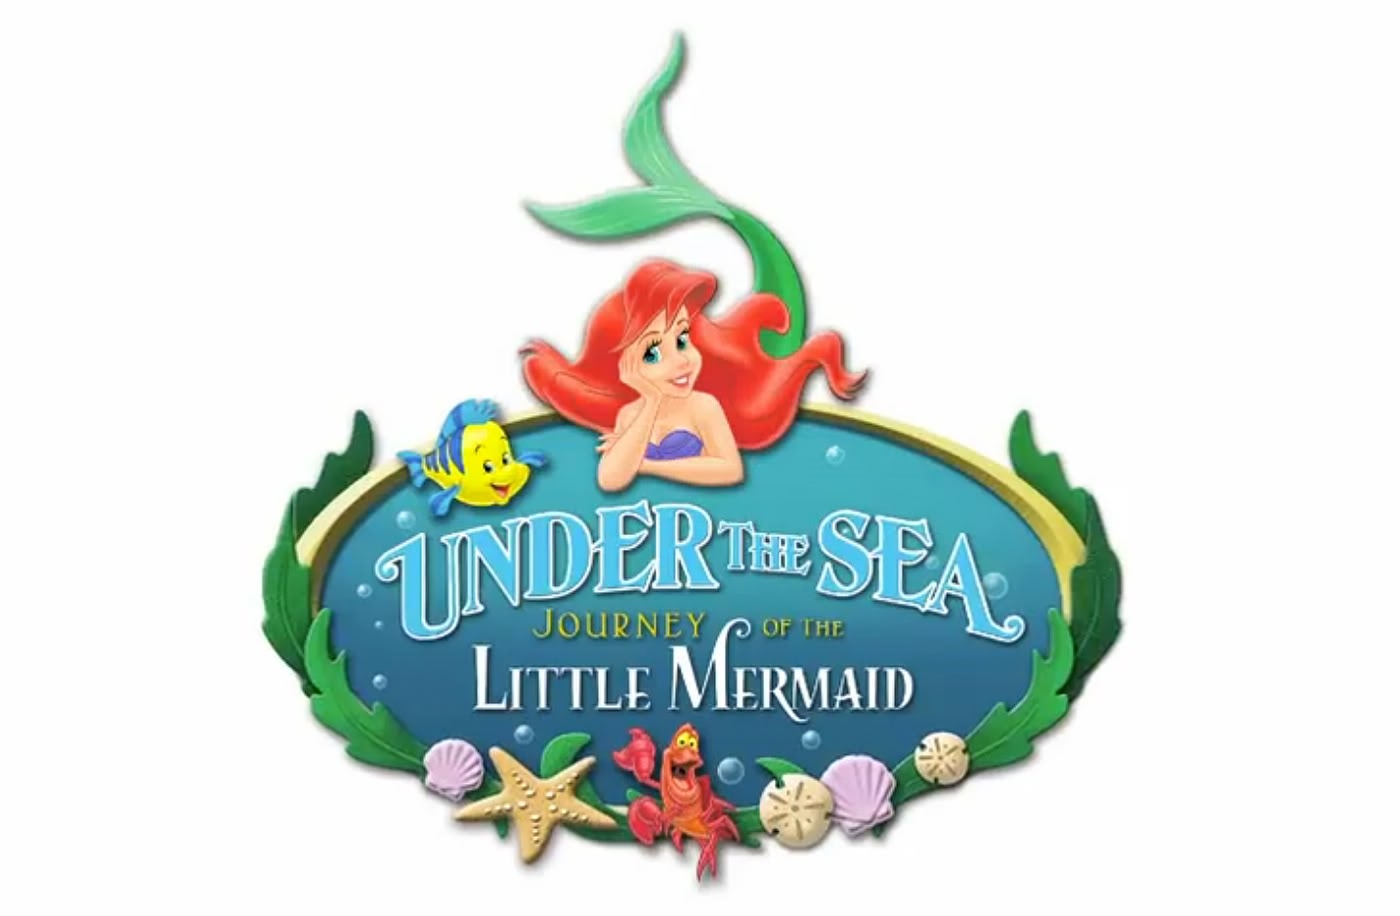 Clip Art. Little Mermaid Clip Art. Drupload.com Free Clipart And.